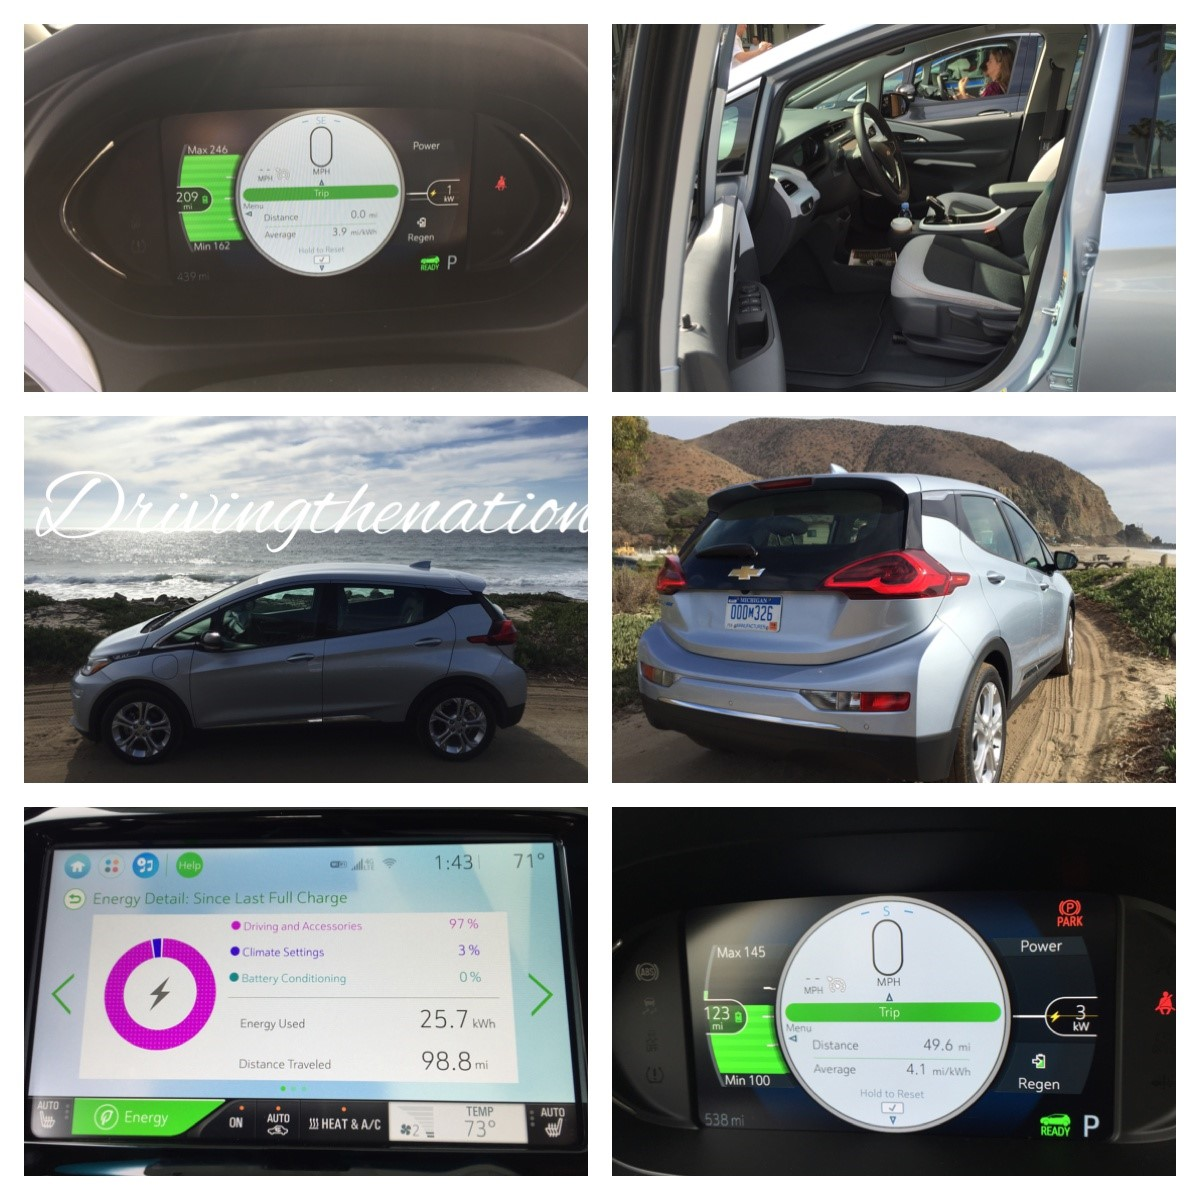 Chevy Bolt Washington post carchat